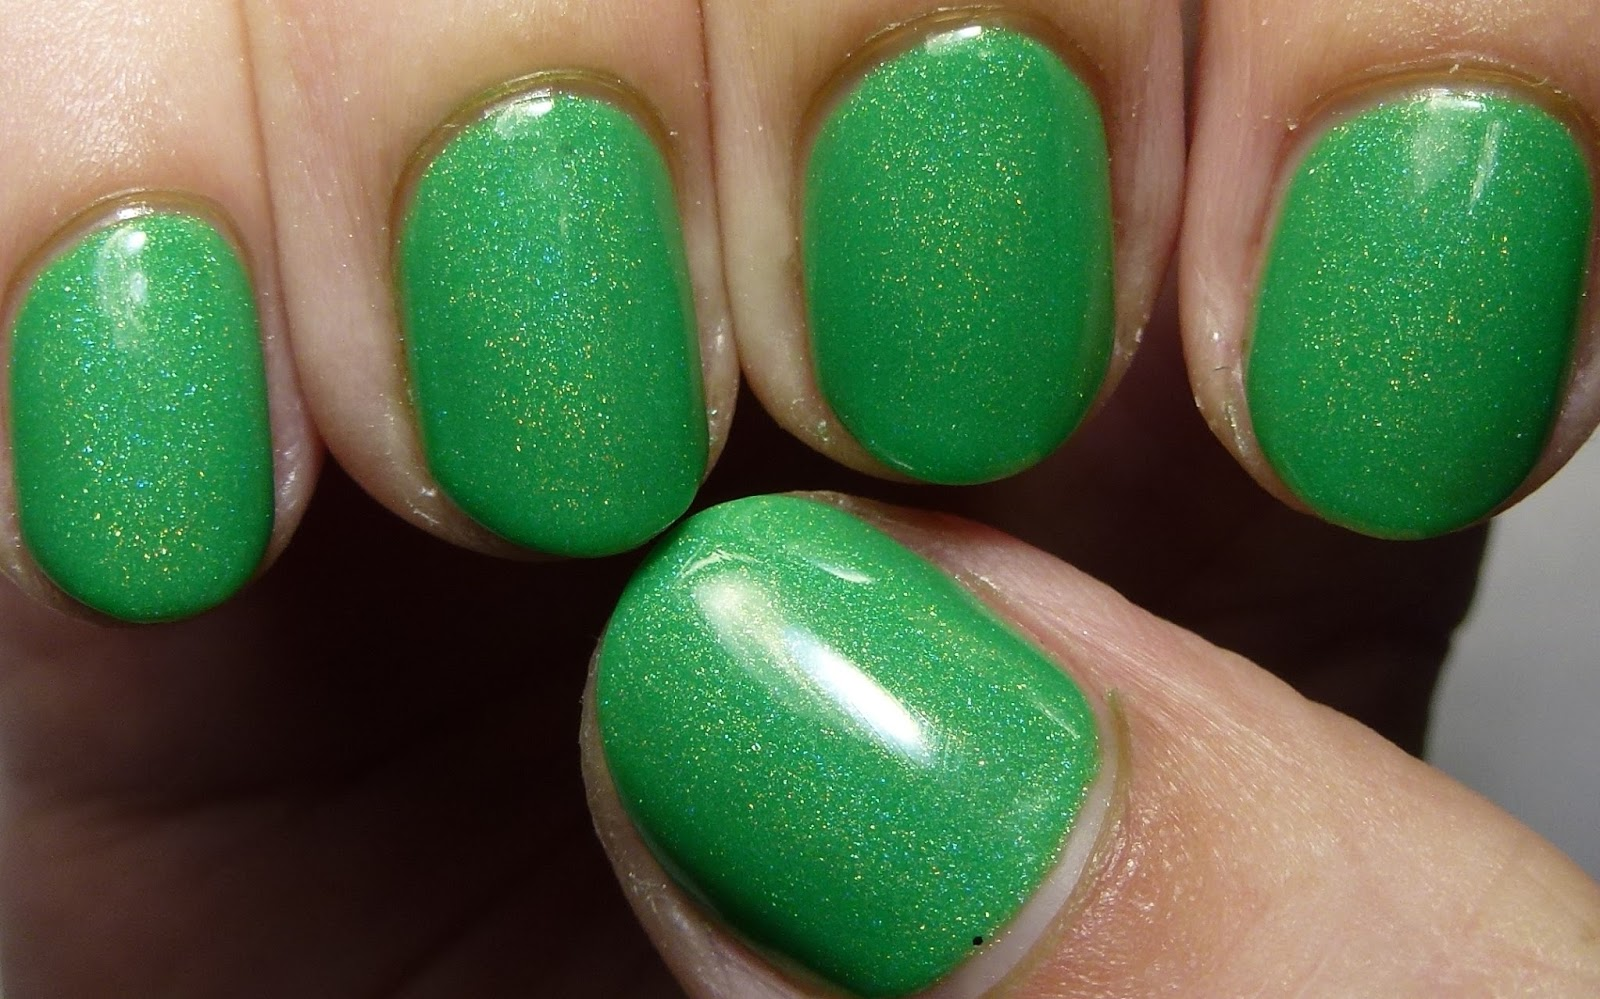 The Polished Hippy: Dead Set Babes neon holos!